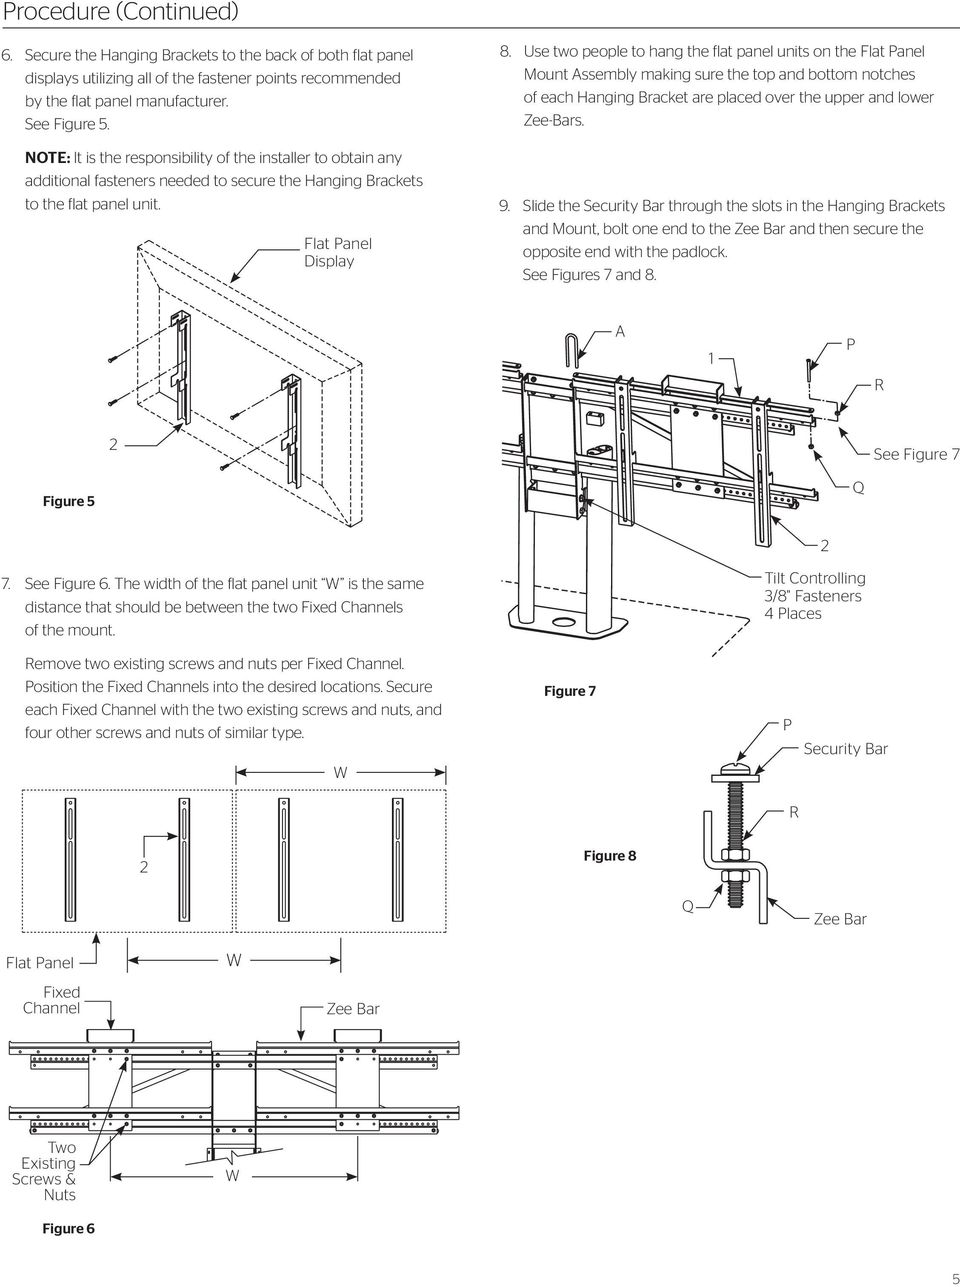 Use two people to hang the flat panel units on the Flat Panel Mount Assembly making sure the top and bottom notches of each Hanging Bracket are placed over the upper and lower Zee-Bars. 9.